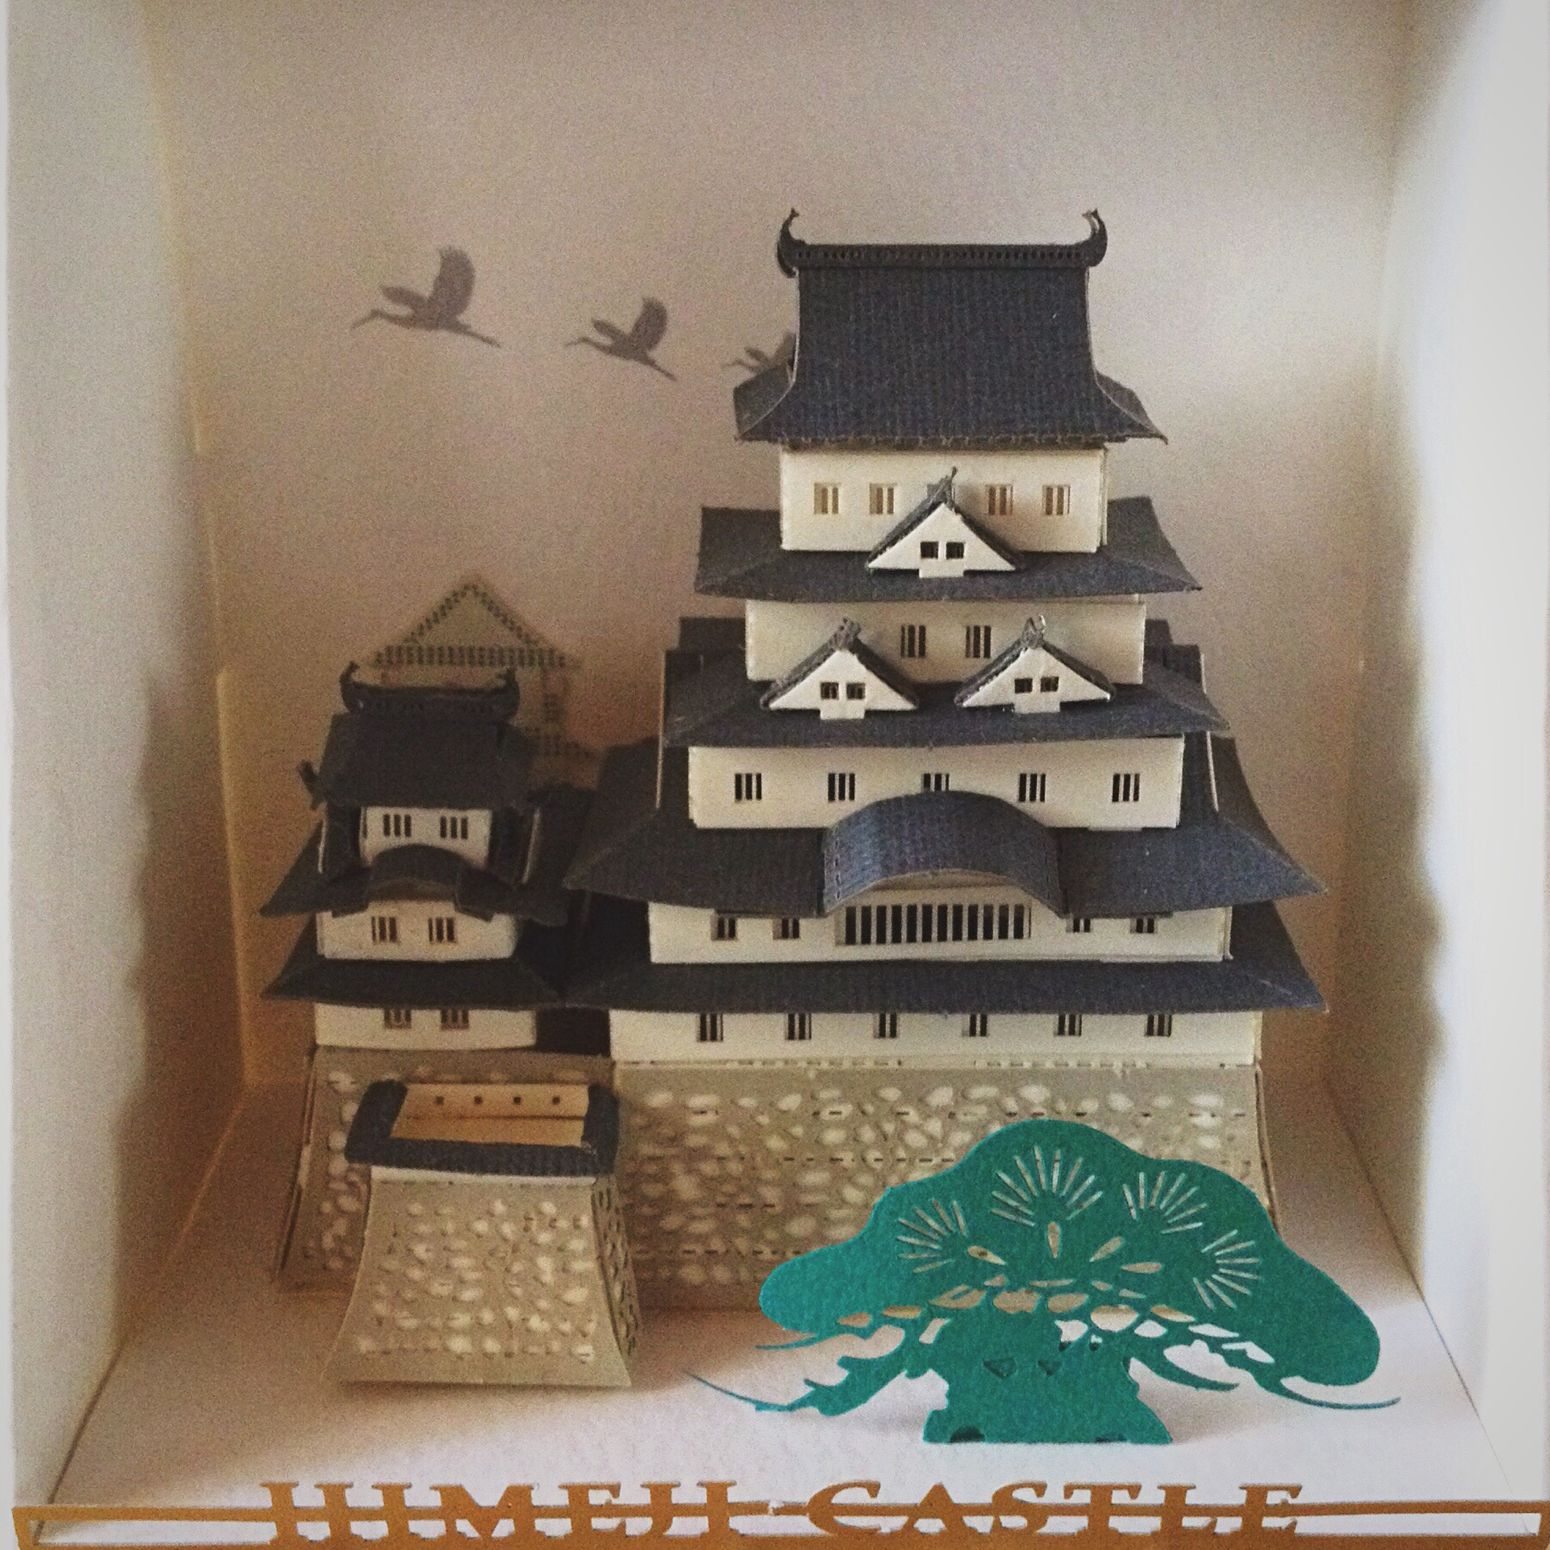 Paper Art Paper Papercraft Himeji Castle Japanese Architecture Japanese Paper Folding Old-fashioned Art And Craft Lieblingsteil